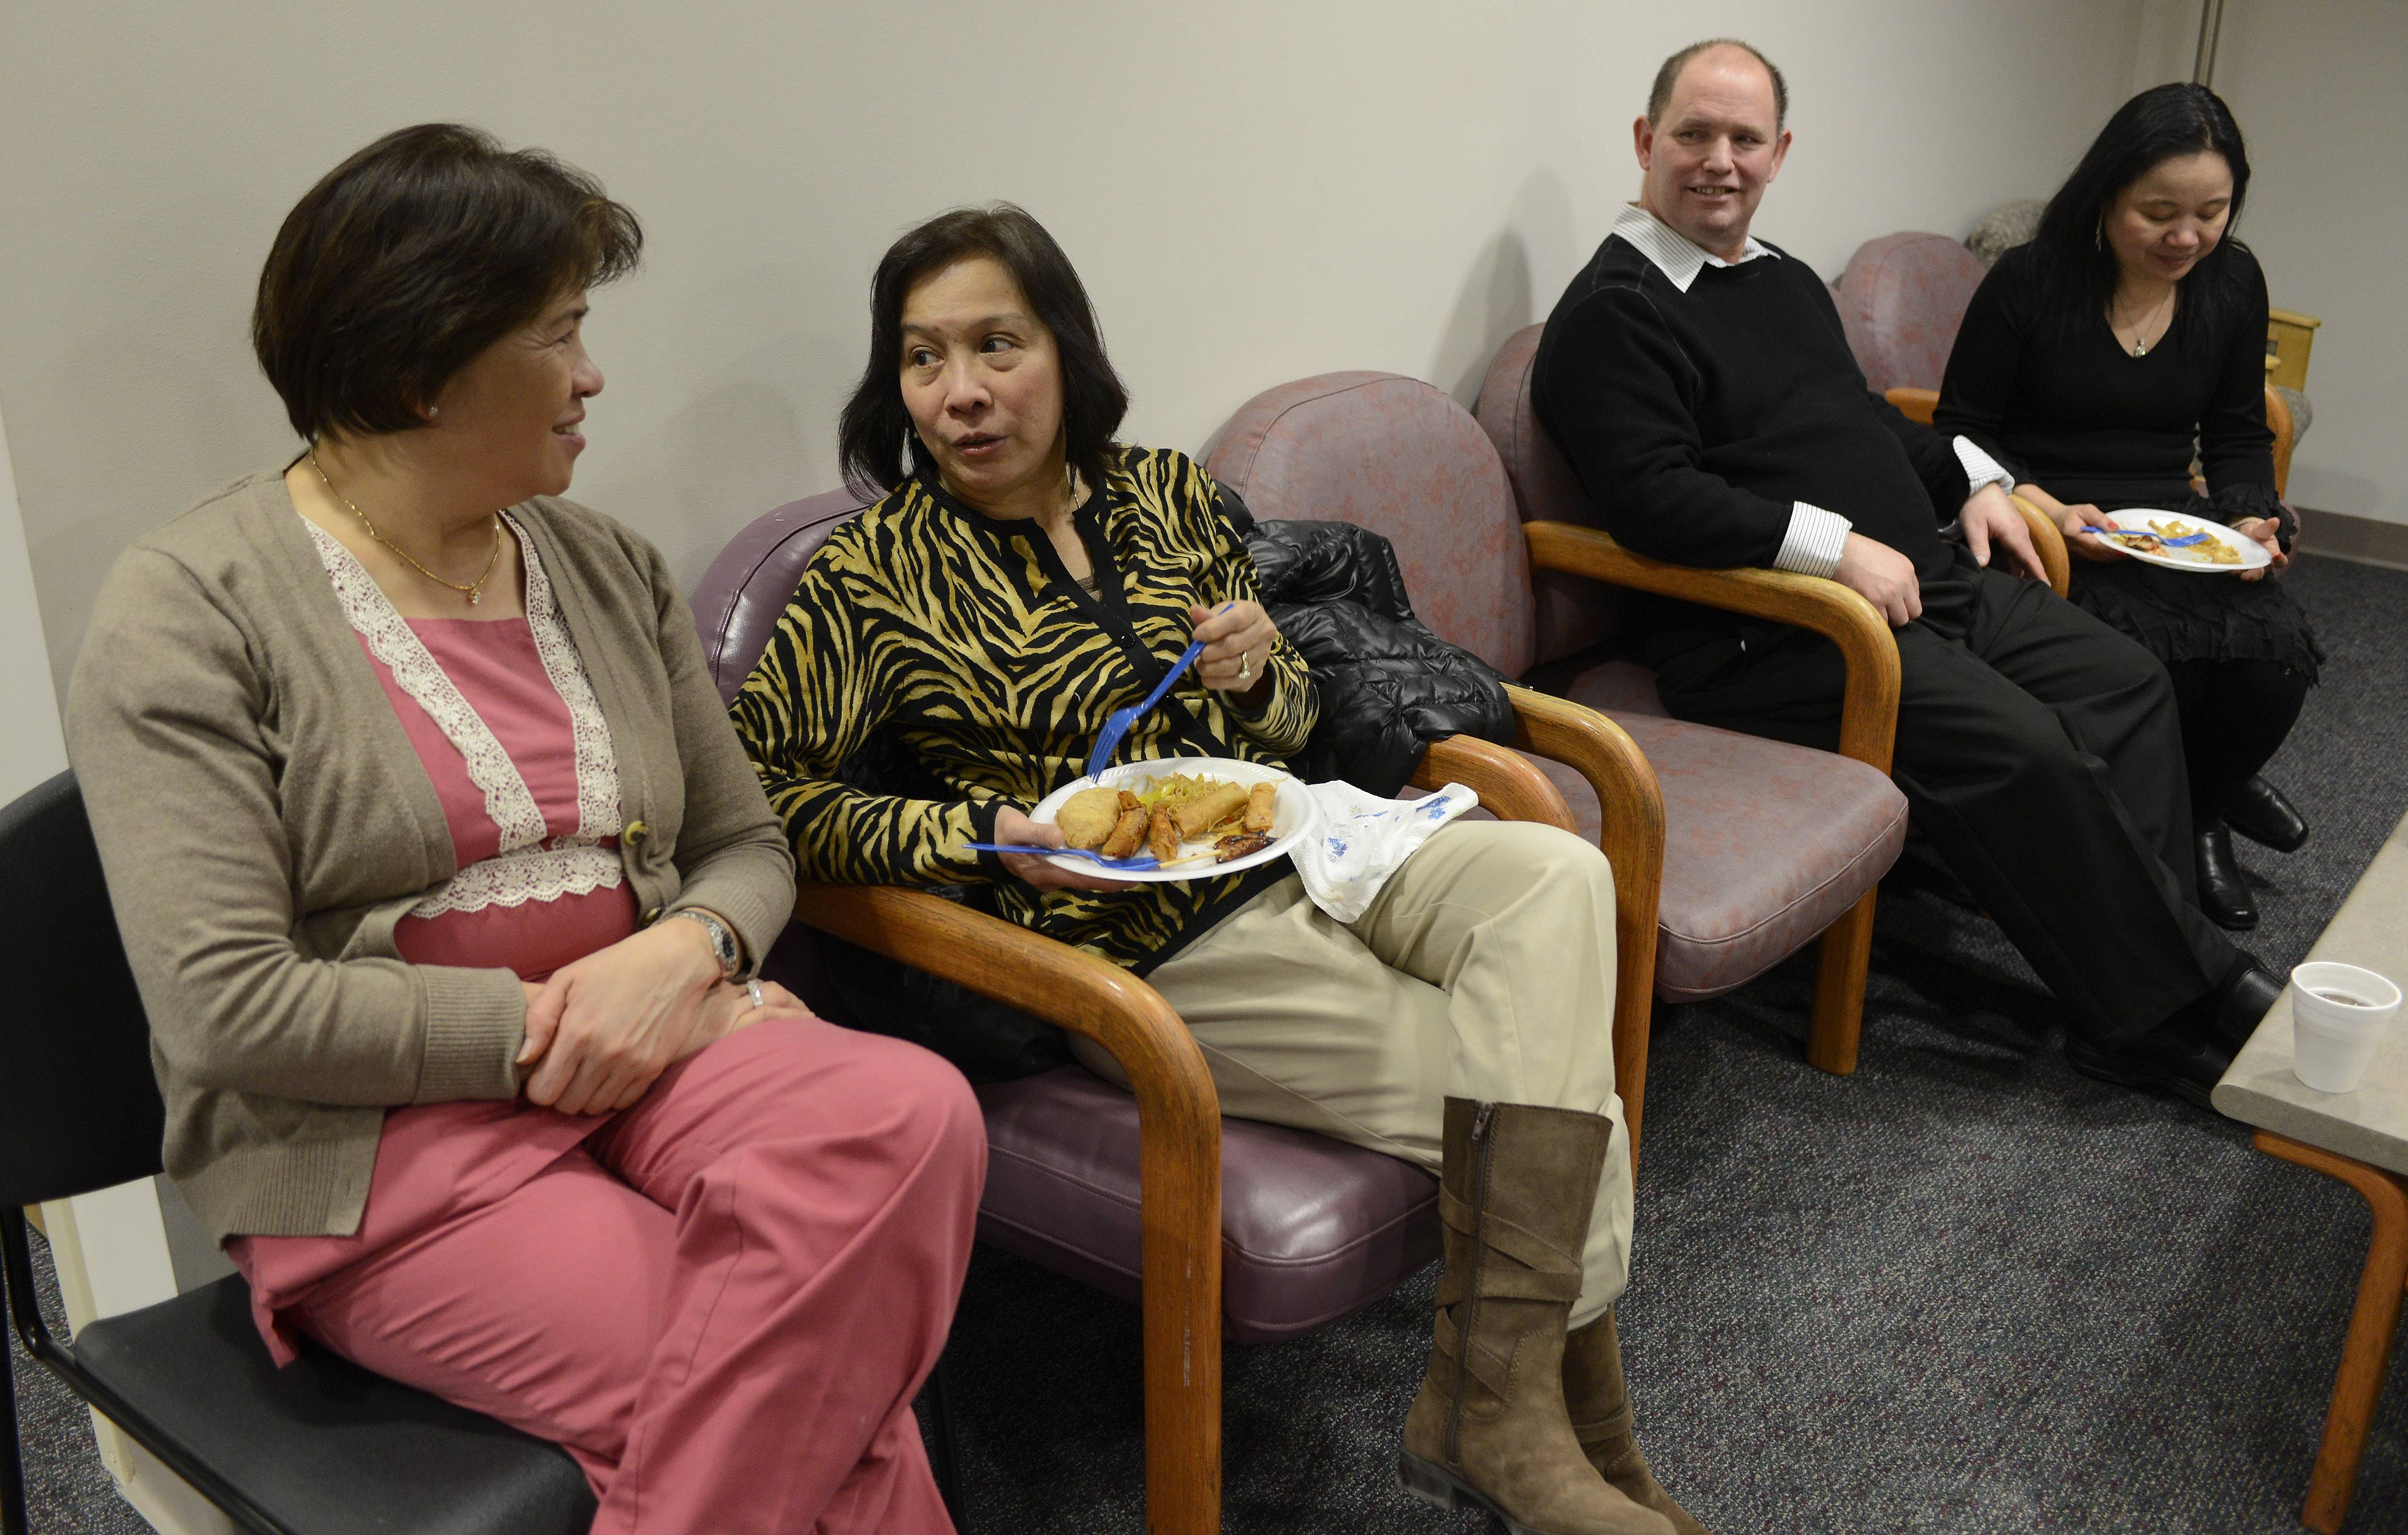 Ofelia Dionsio, left, aunt of Allen Belaguas, chats with nurse Terri Gagula during the Friday luncheon hosted by Allen's parents George and Zita Pierson, in the background.